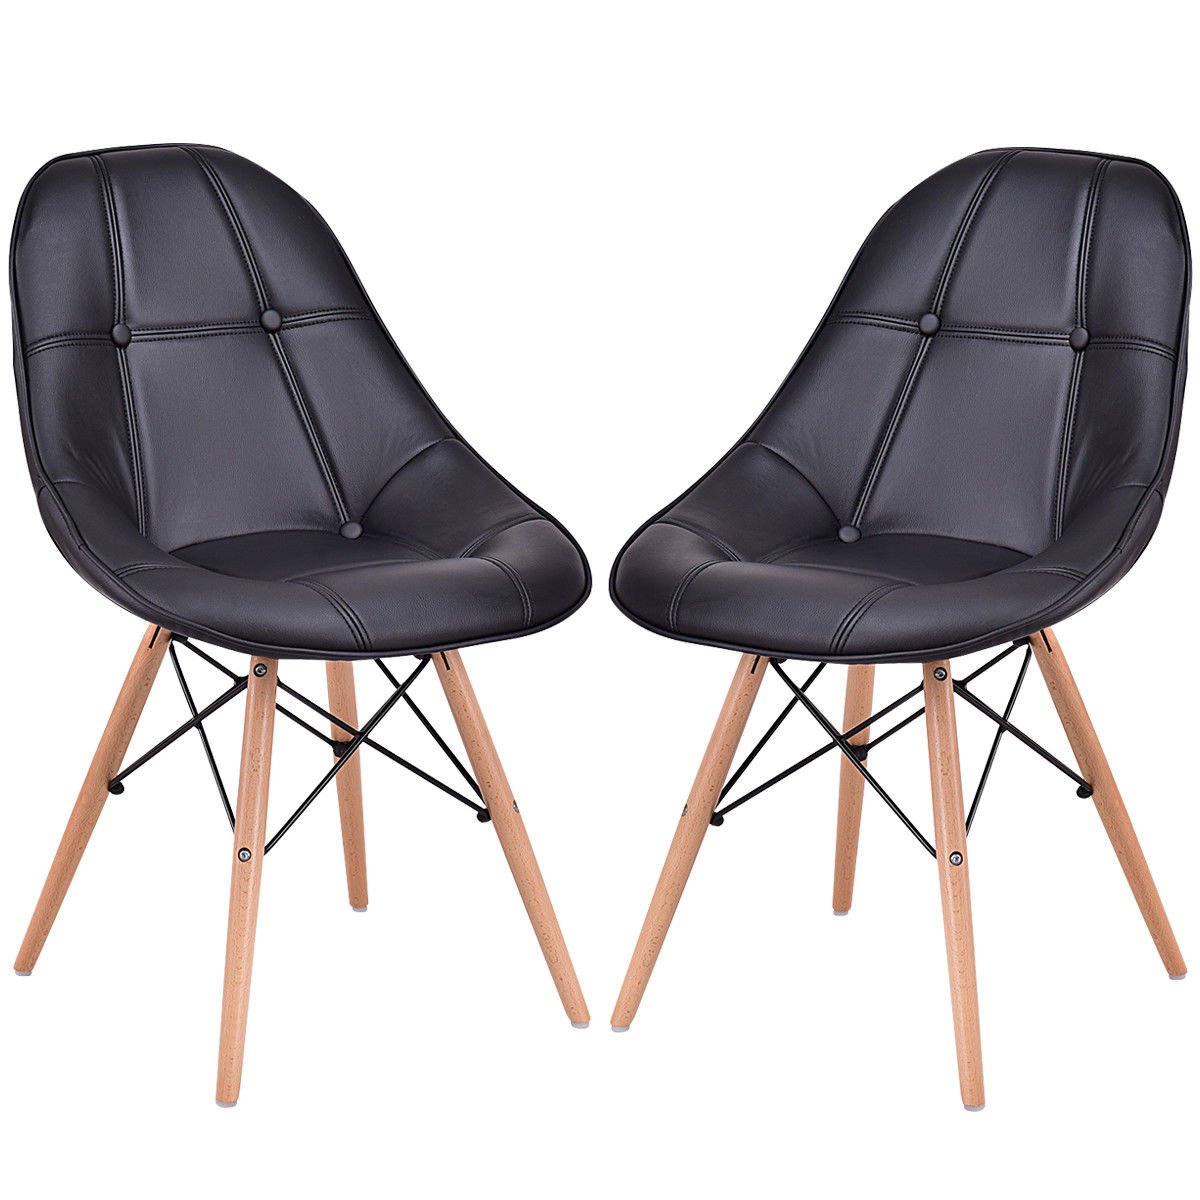 Giantex Set Of 2 Dining Side Chair Modern Armless Pu Leather